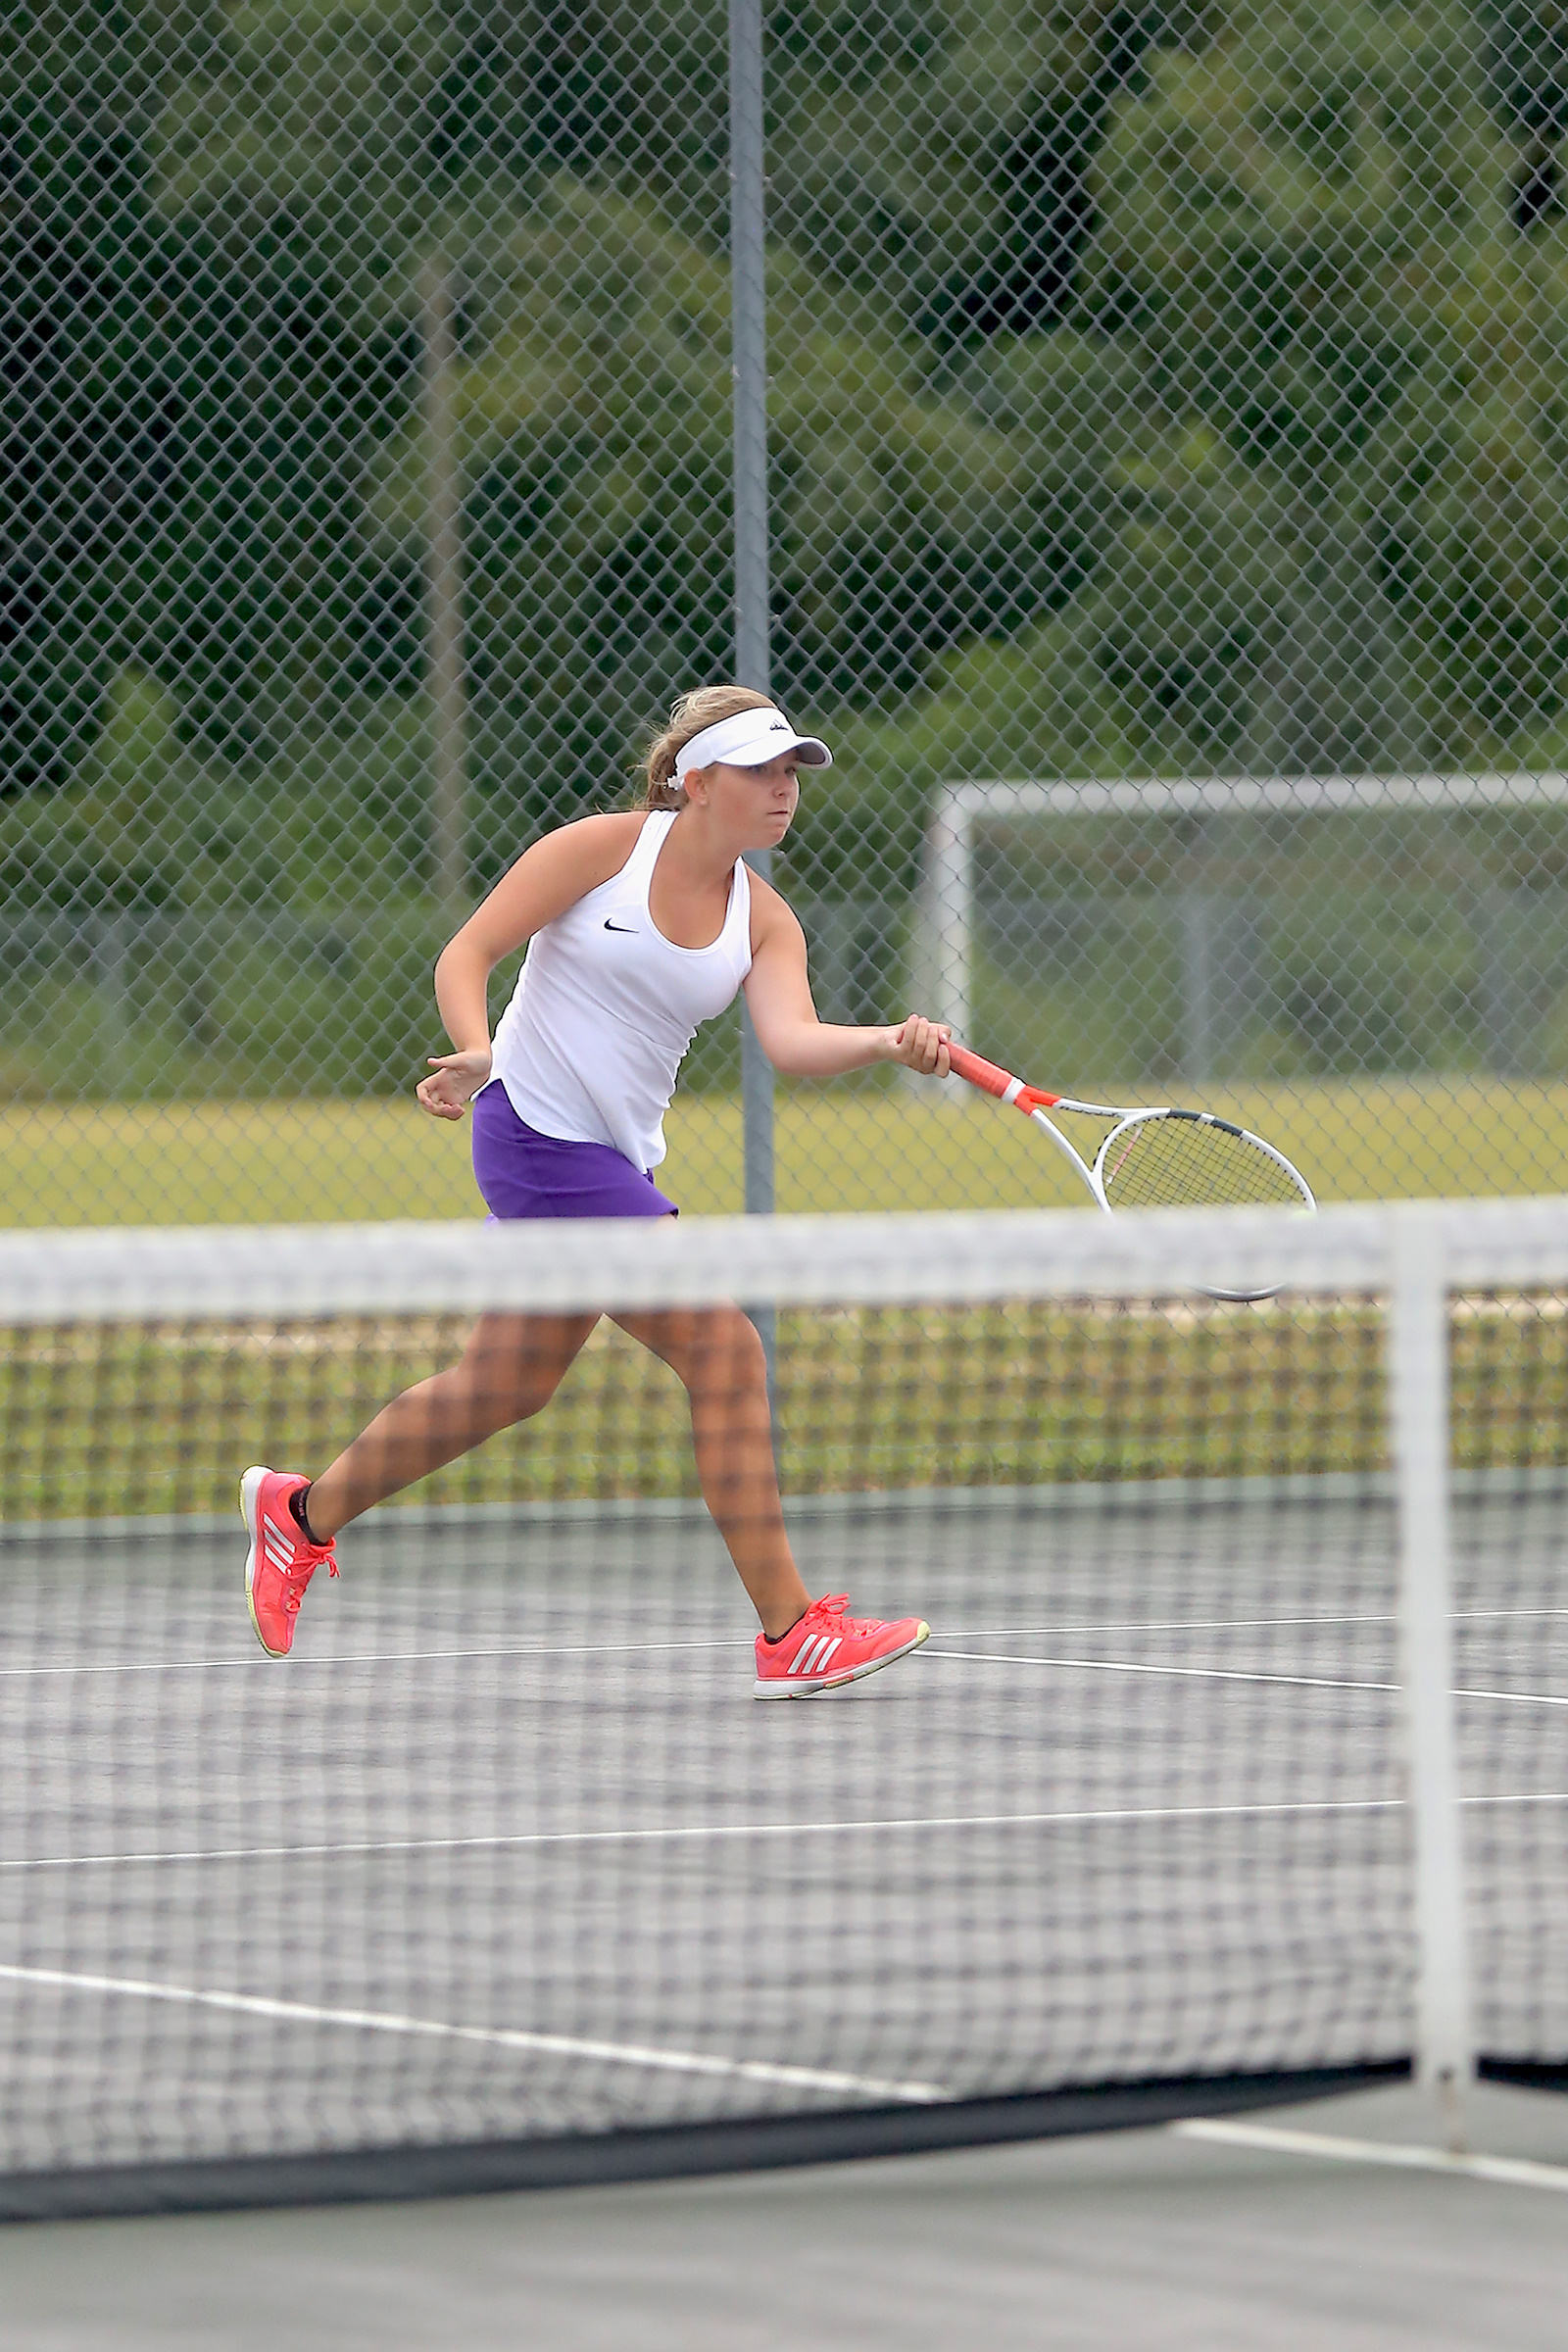 East Columbus v West Bladen 2017 Tennis 6